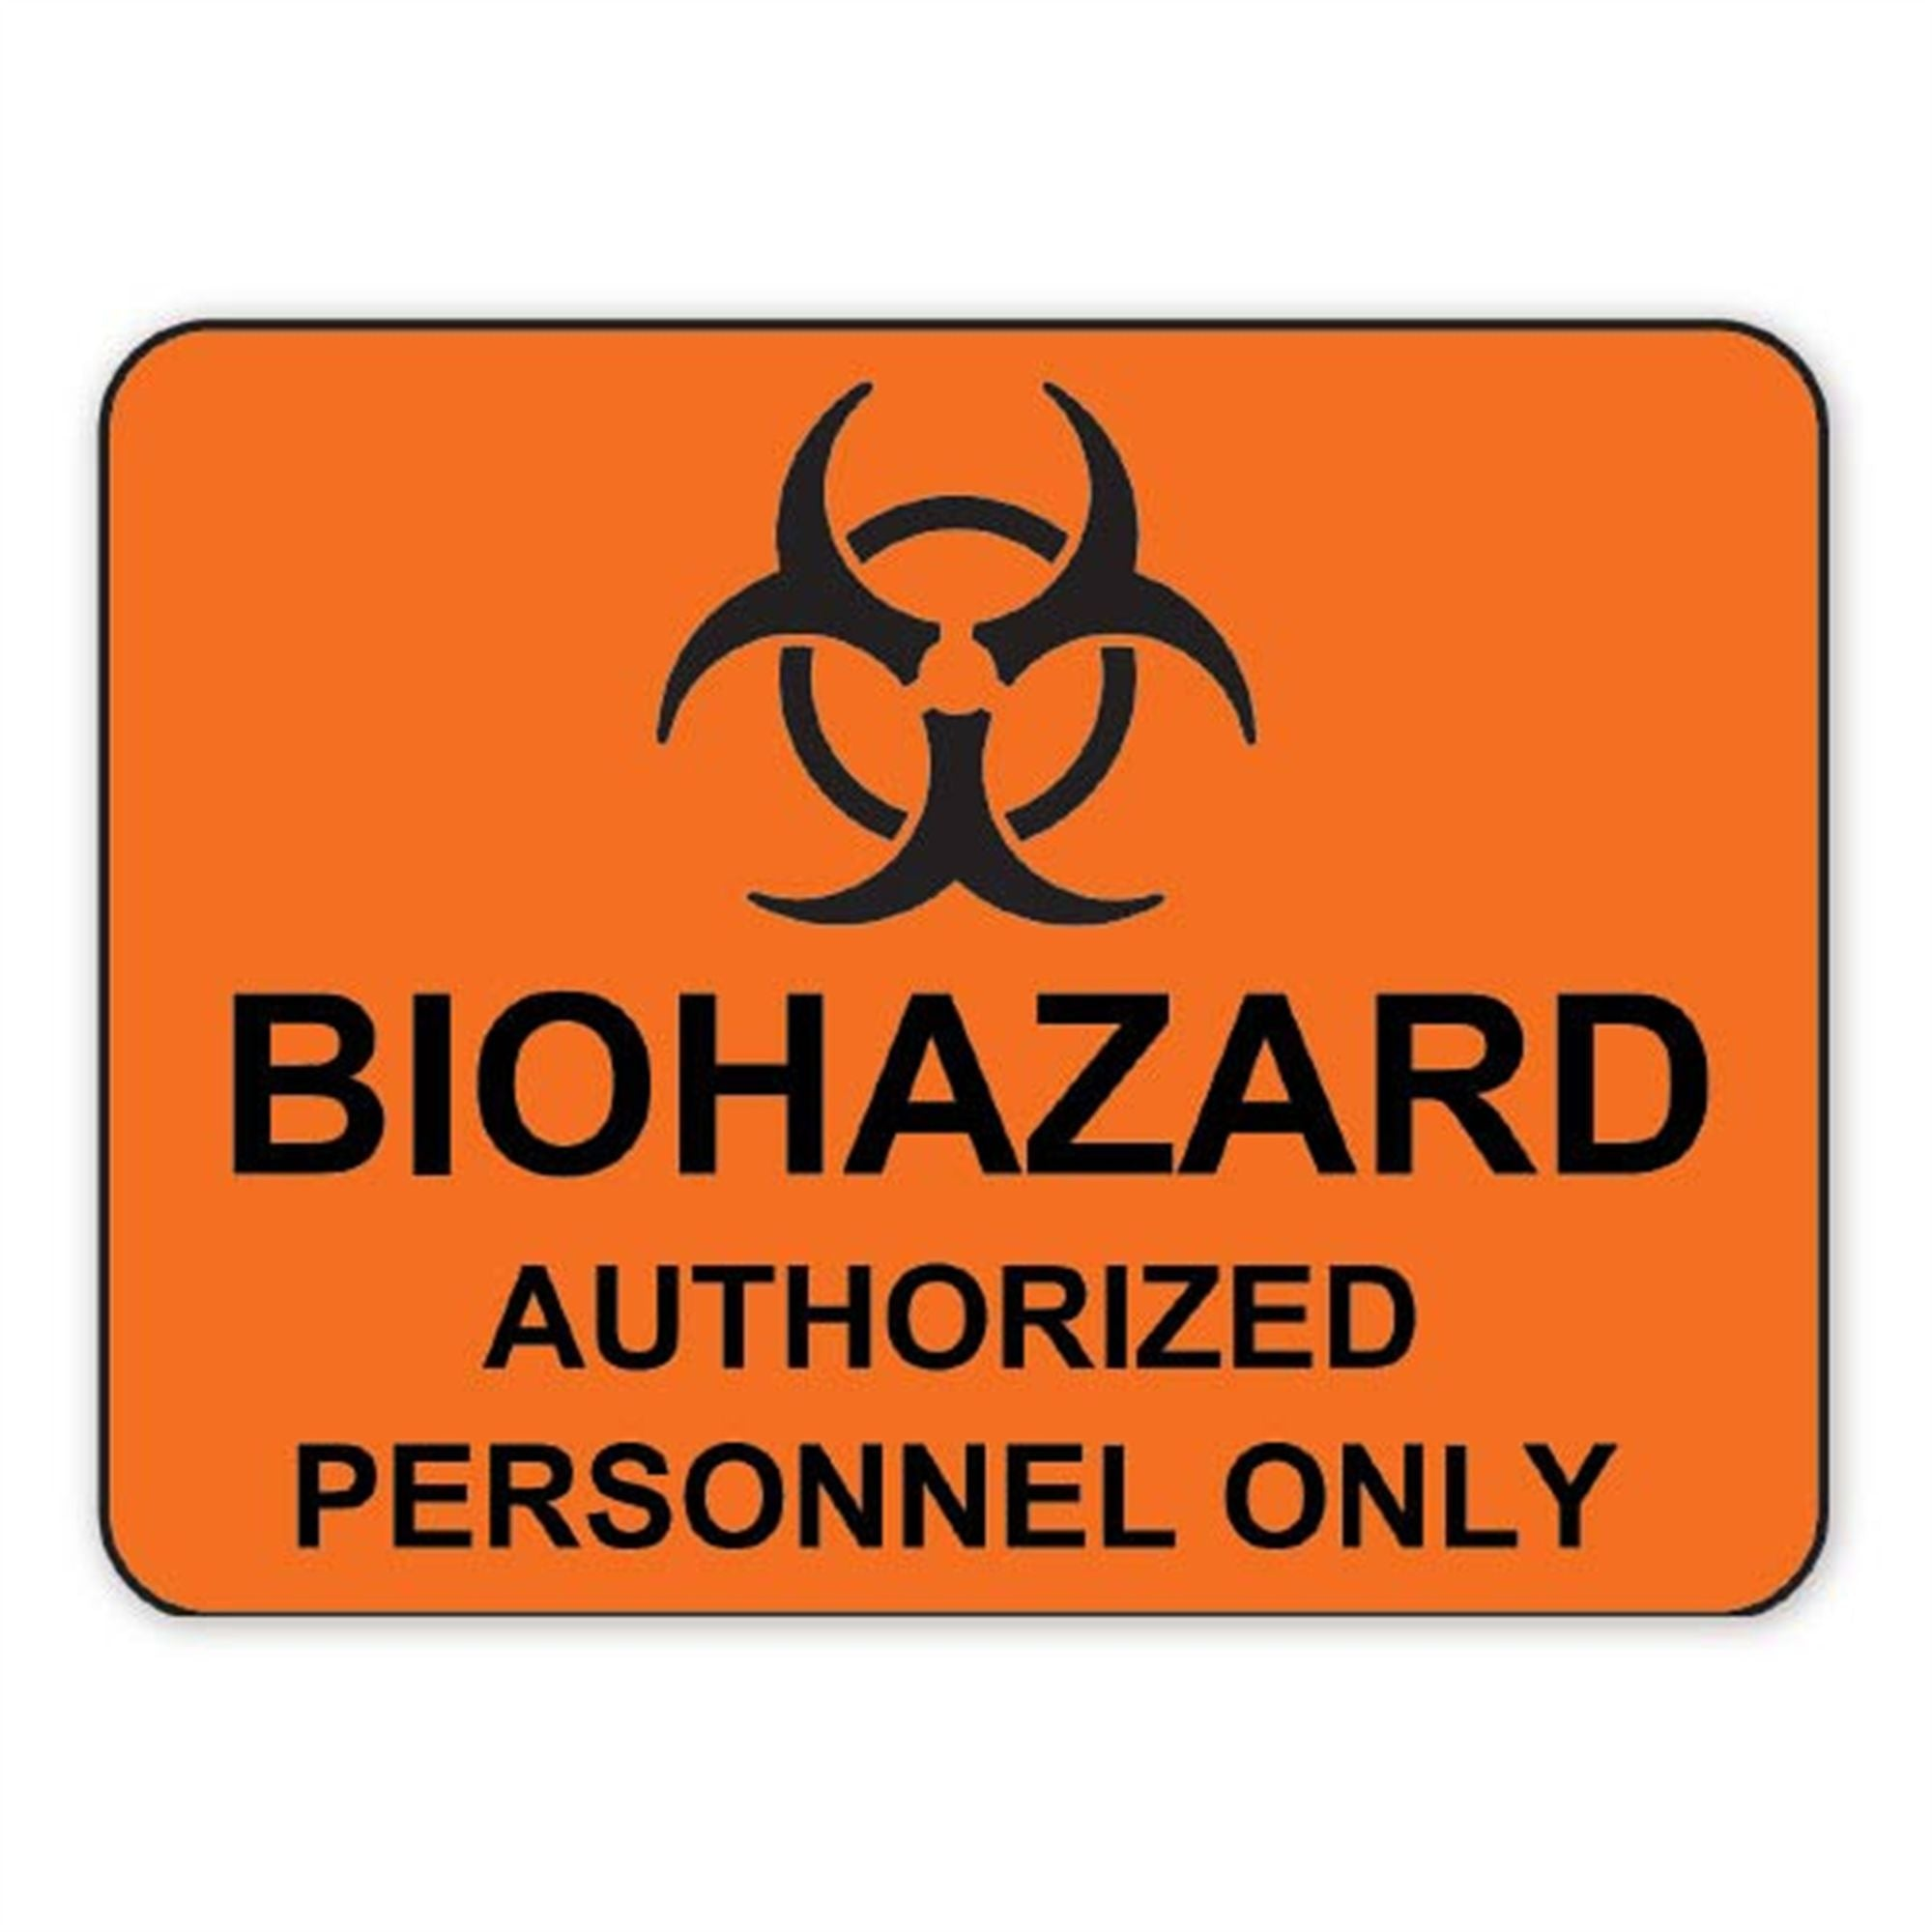 """Biohazard Authorized Personnel Only"" Sign"